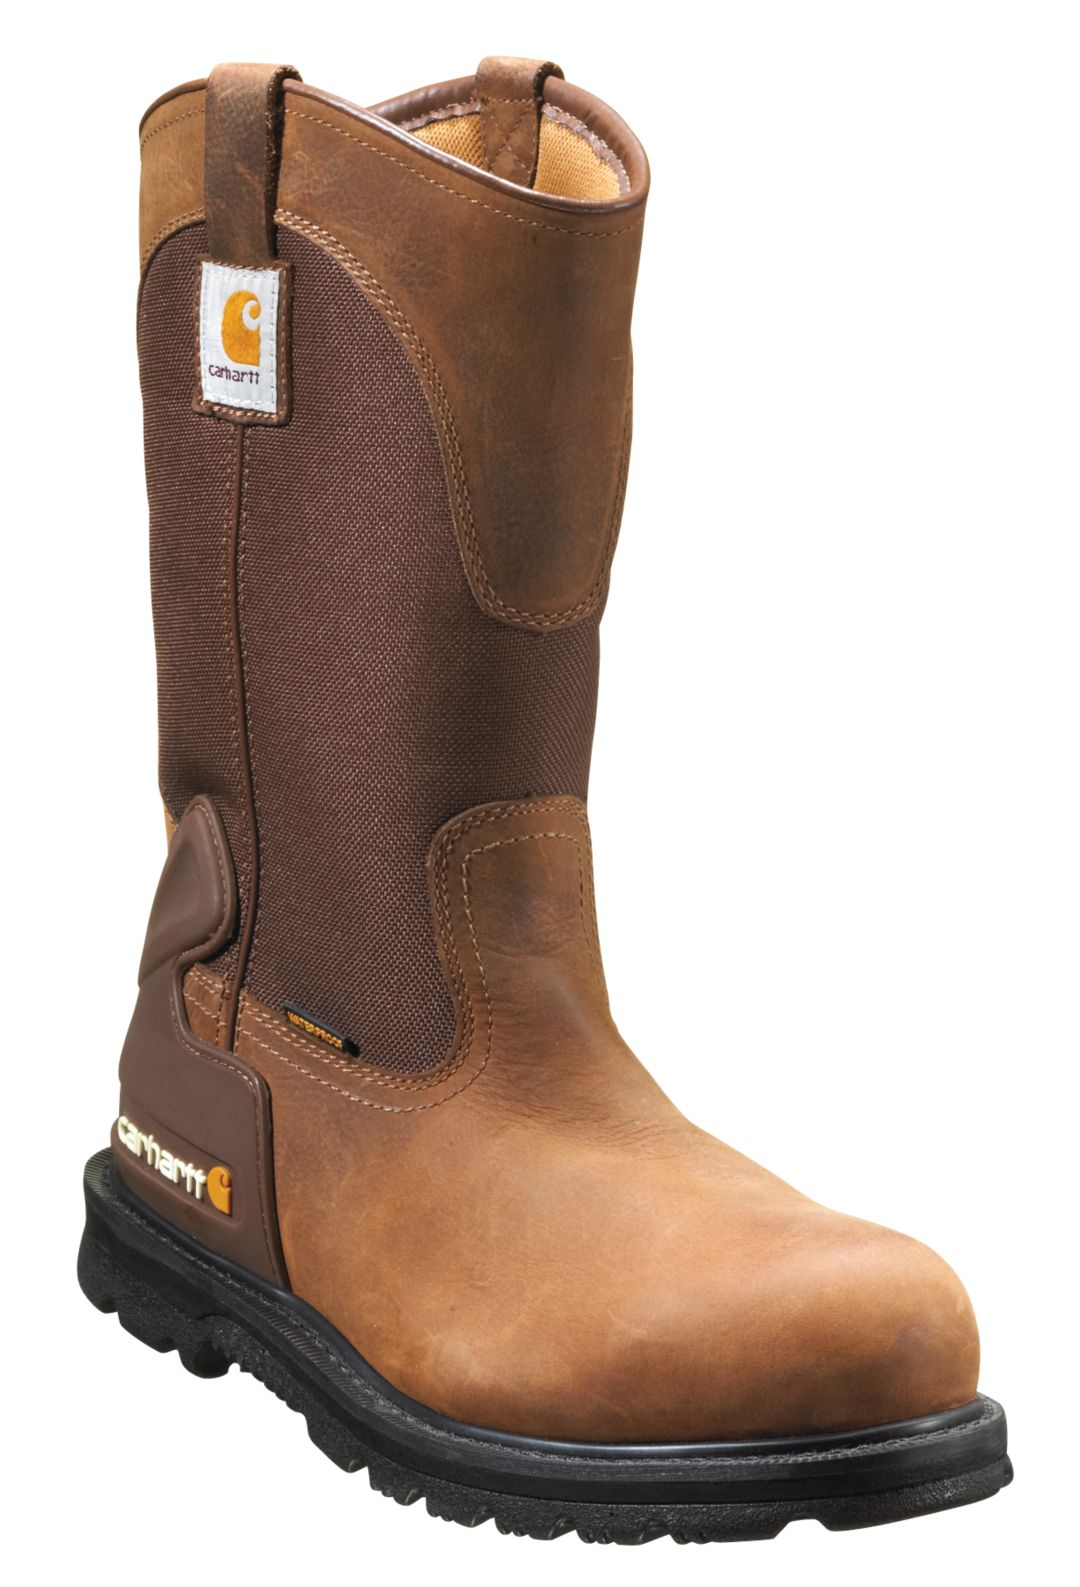 "aea308fe49a Carhartt Men's 11"" Wellington Safety Toe Waterproof Work Boots"